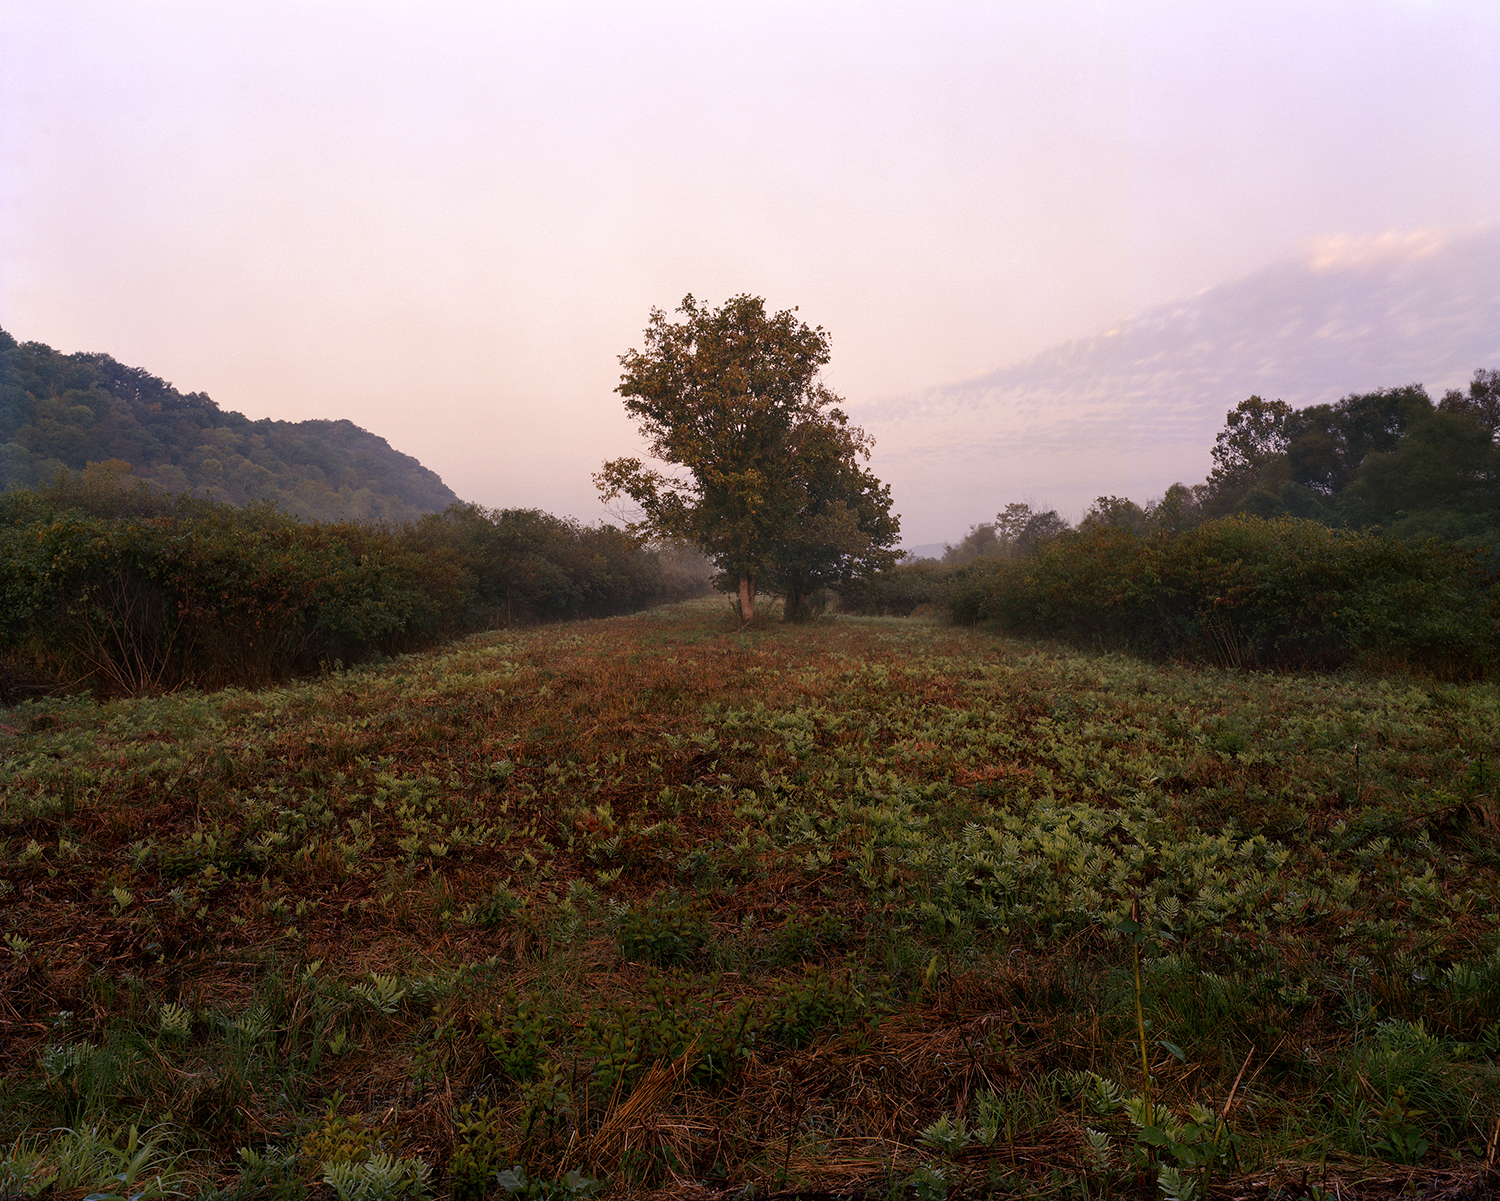 Cleared Meadow, Greenbottom Wildlife Management Area, WV, 2011